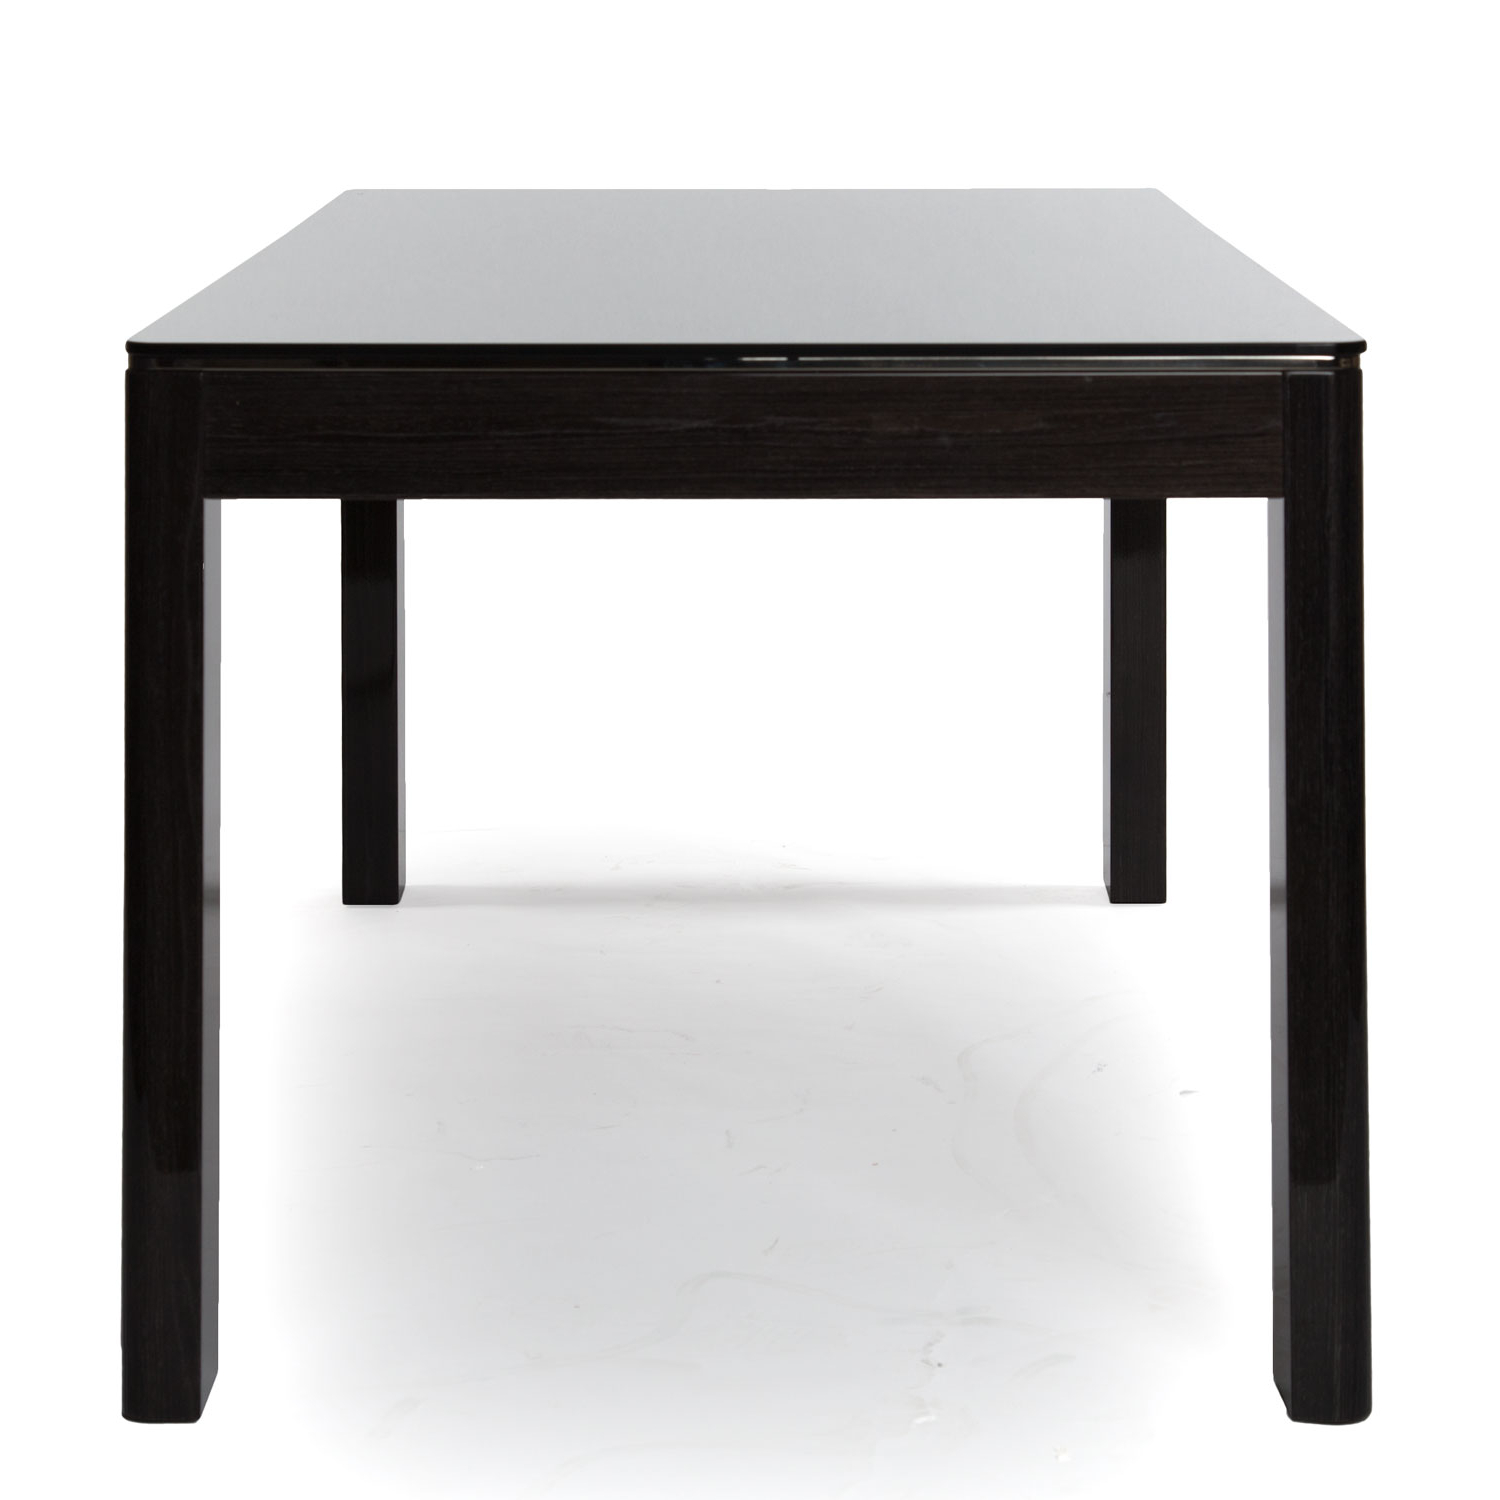 Dining Table – Rectangular Black Glass Pertaining To Rectangular Glass Top Dining Tables (View 22 of 25)